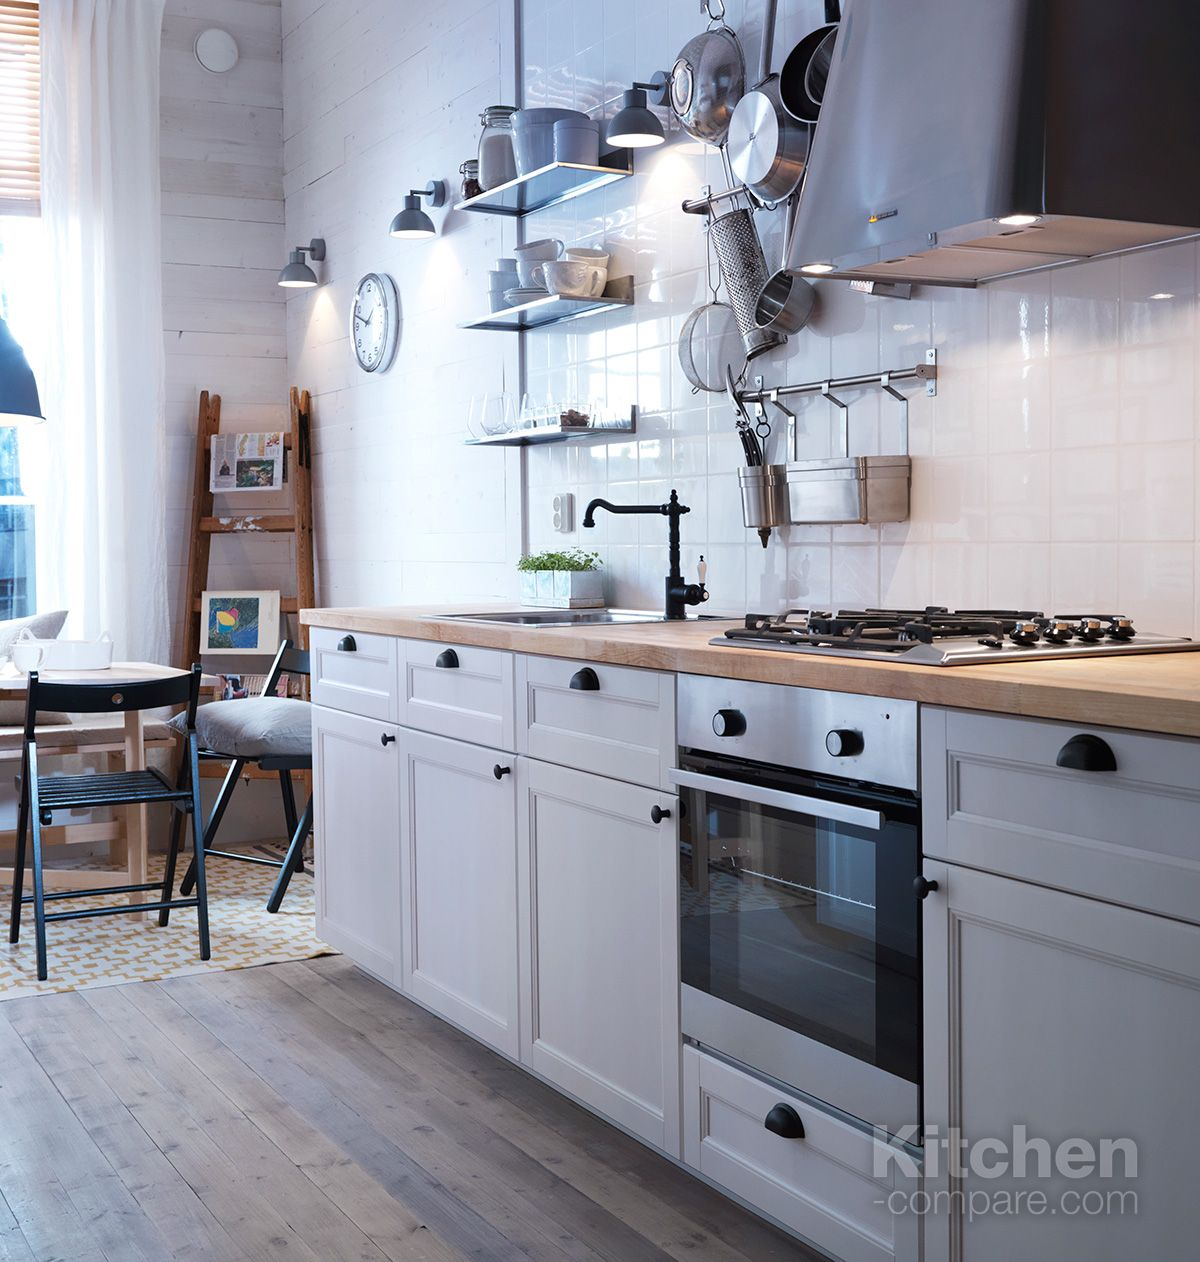 Ikea Kitchen Bodbyn Off White: IKEA Metod Laxarby White Birch